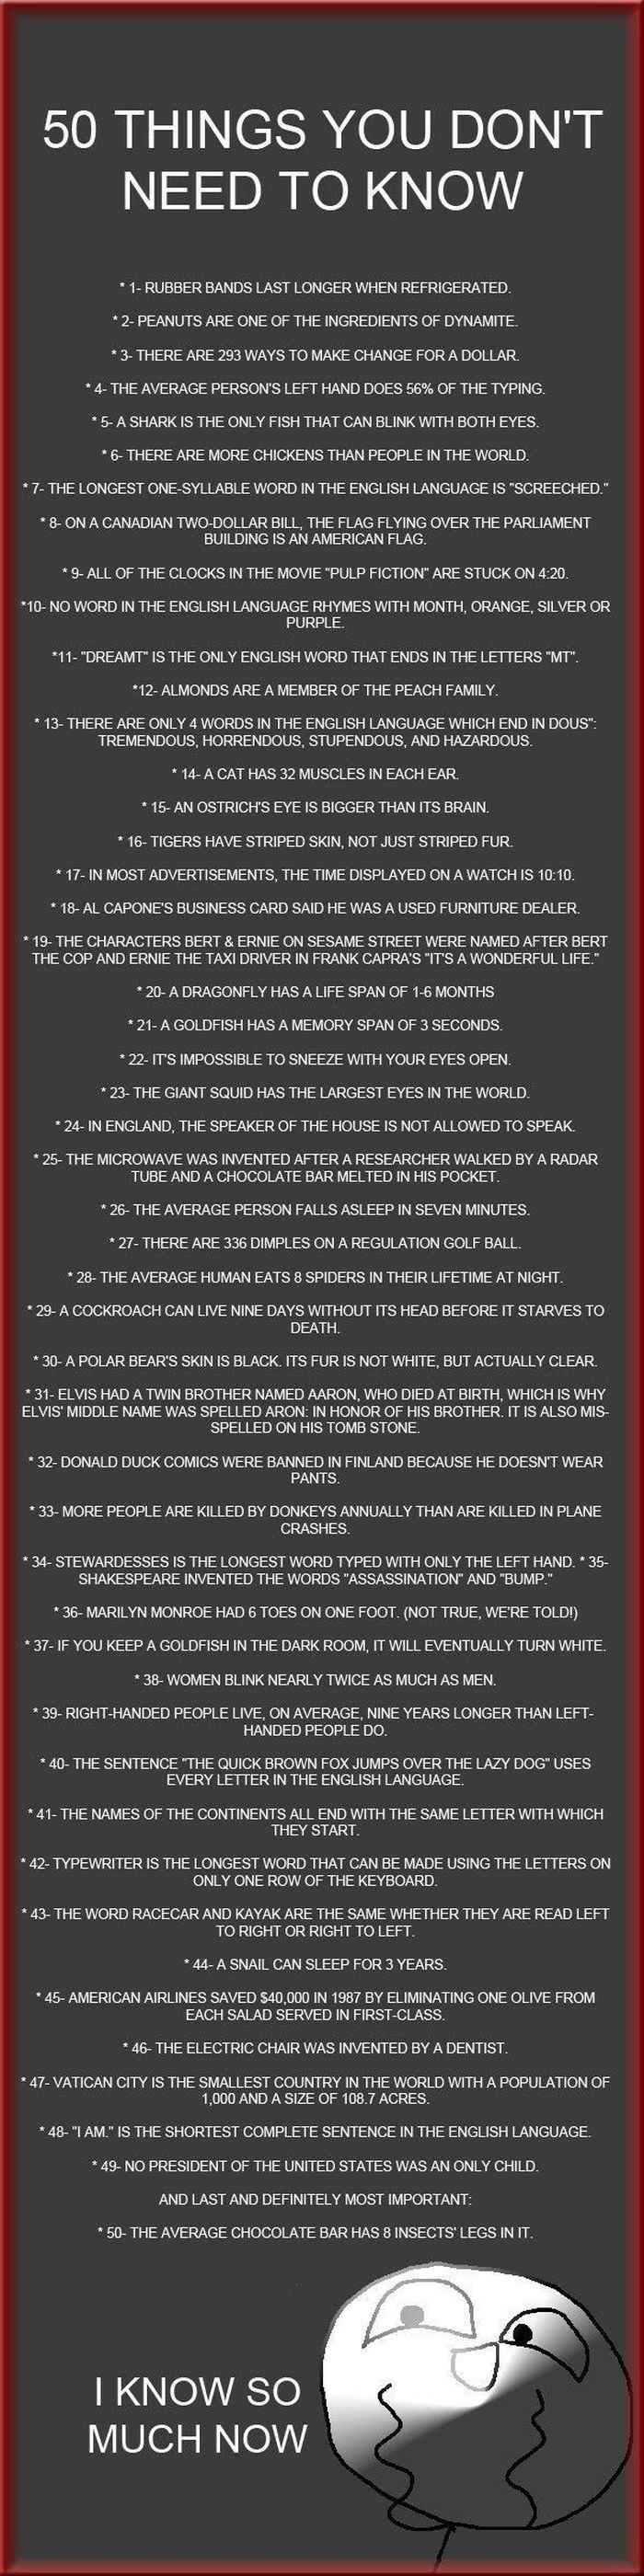 50 Useless Facts (1 pic)